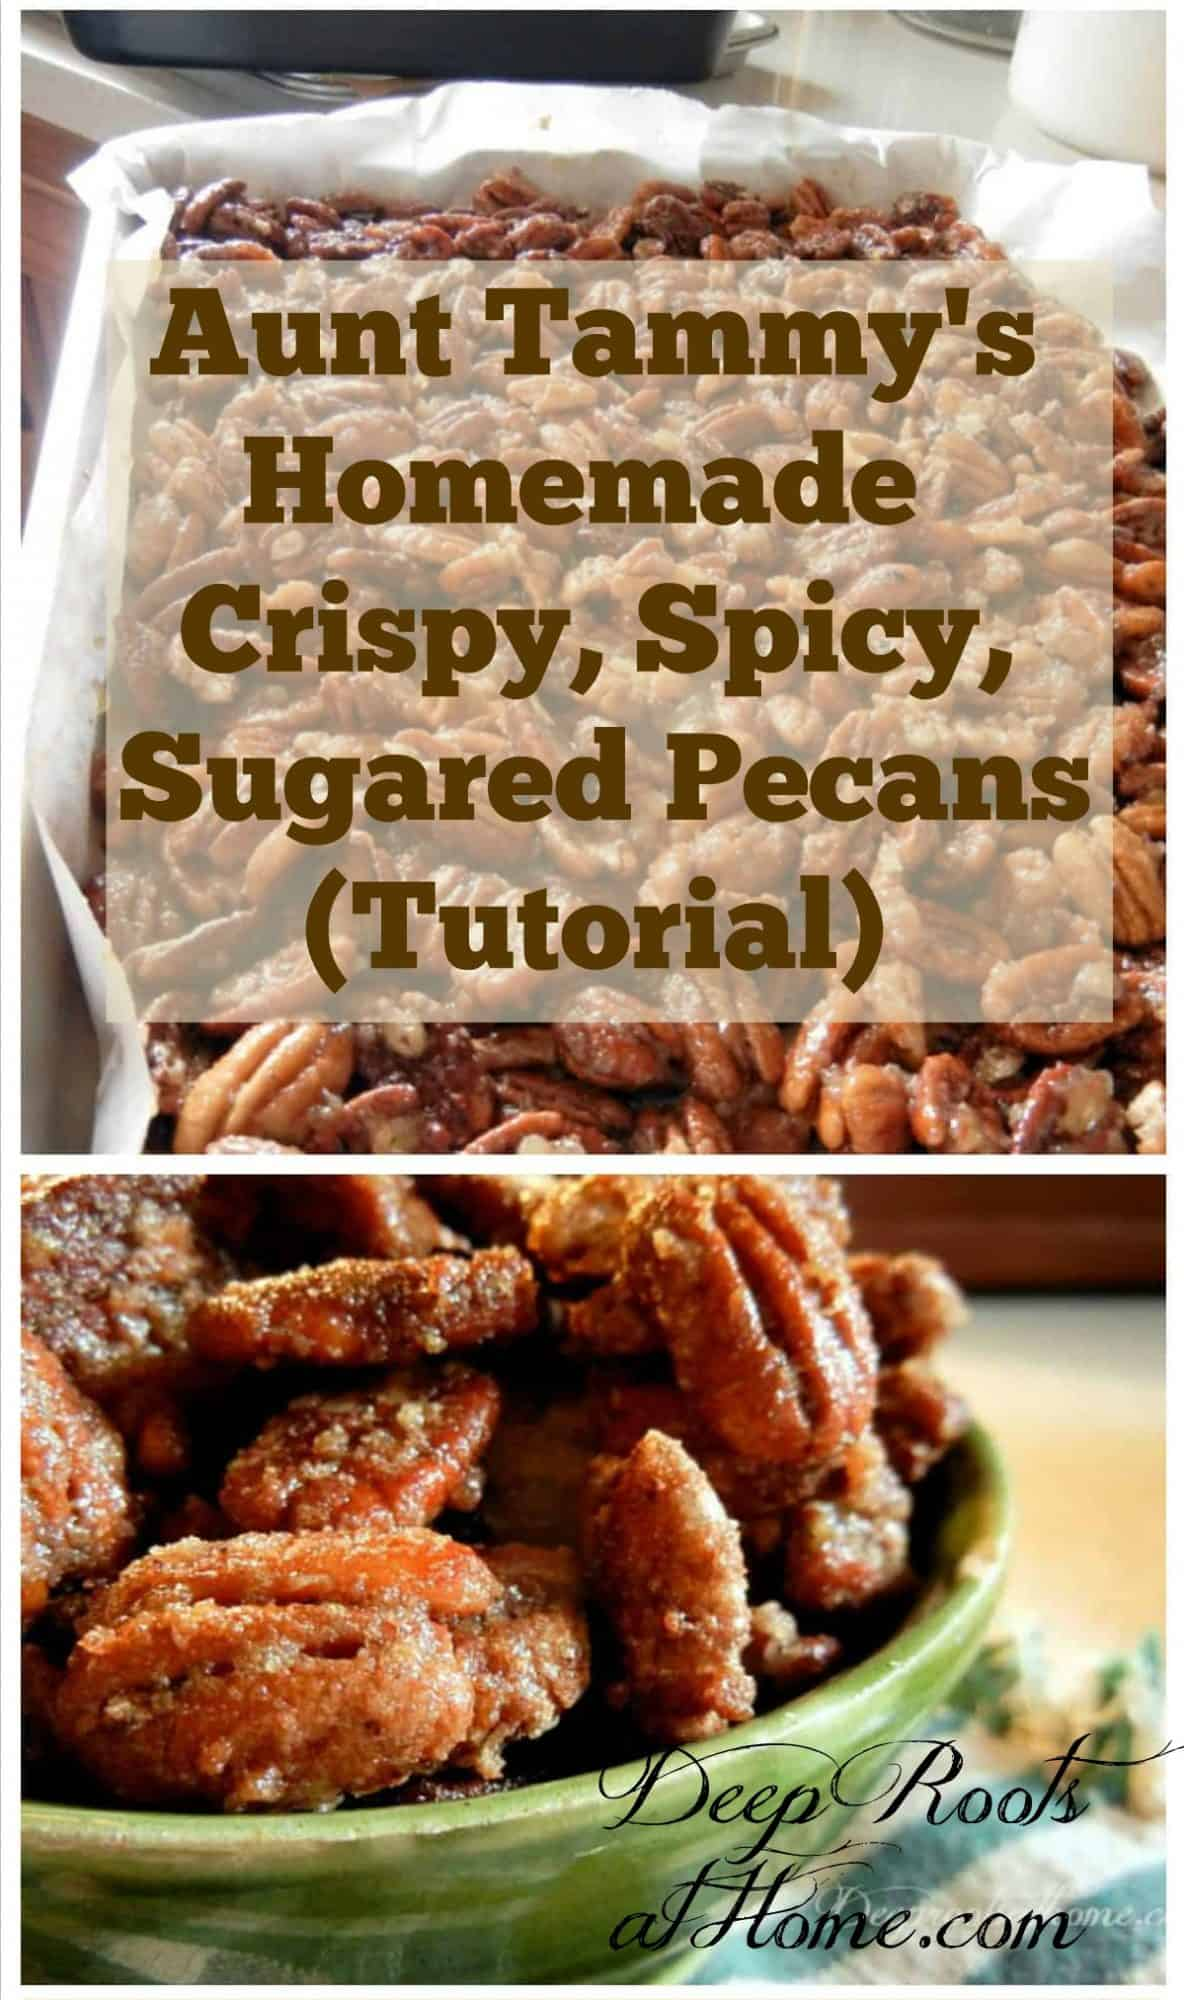 Aunt Tammy's Homemade Sugared Pecans. Tammy's candied pecans